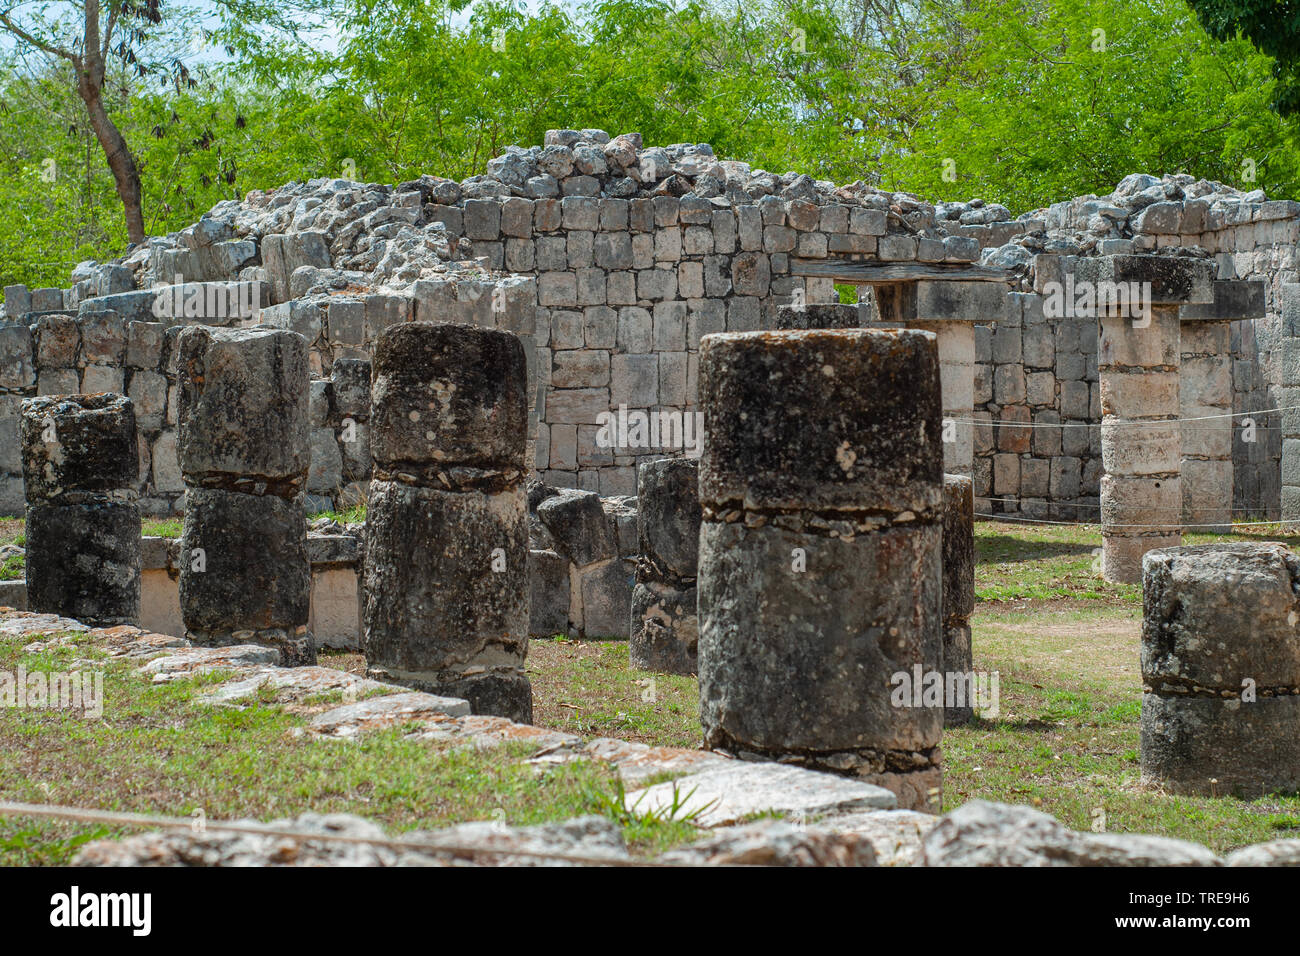 Ruins and columns of a Mayan temple, in the archaeological area of Chichen Itza, on the Yucatan peninsula - Stock Image